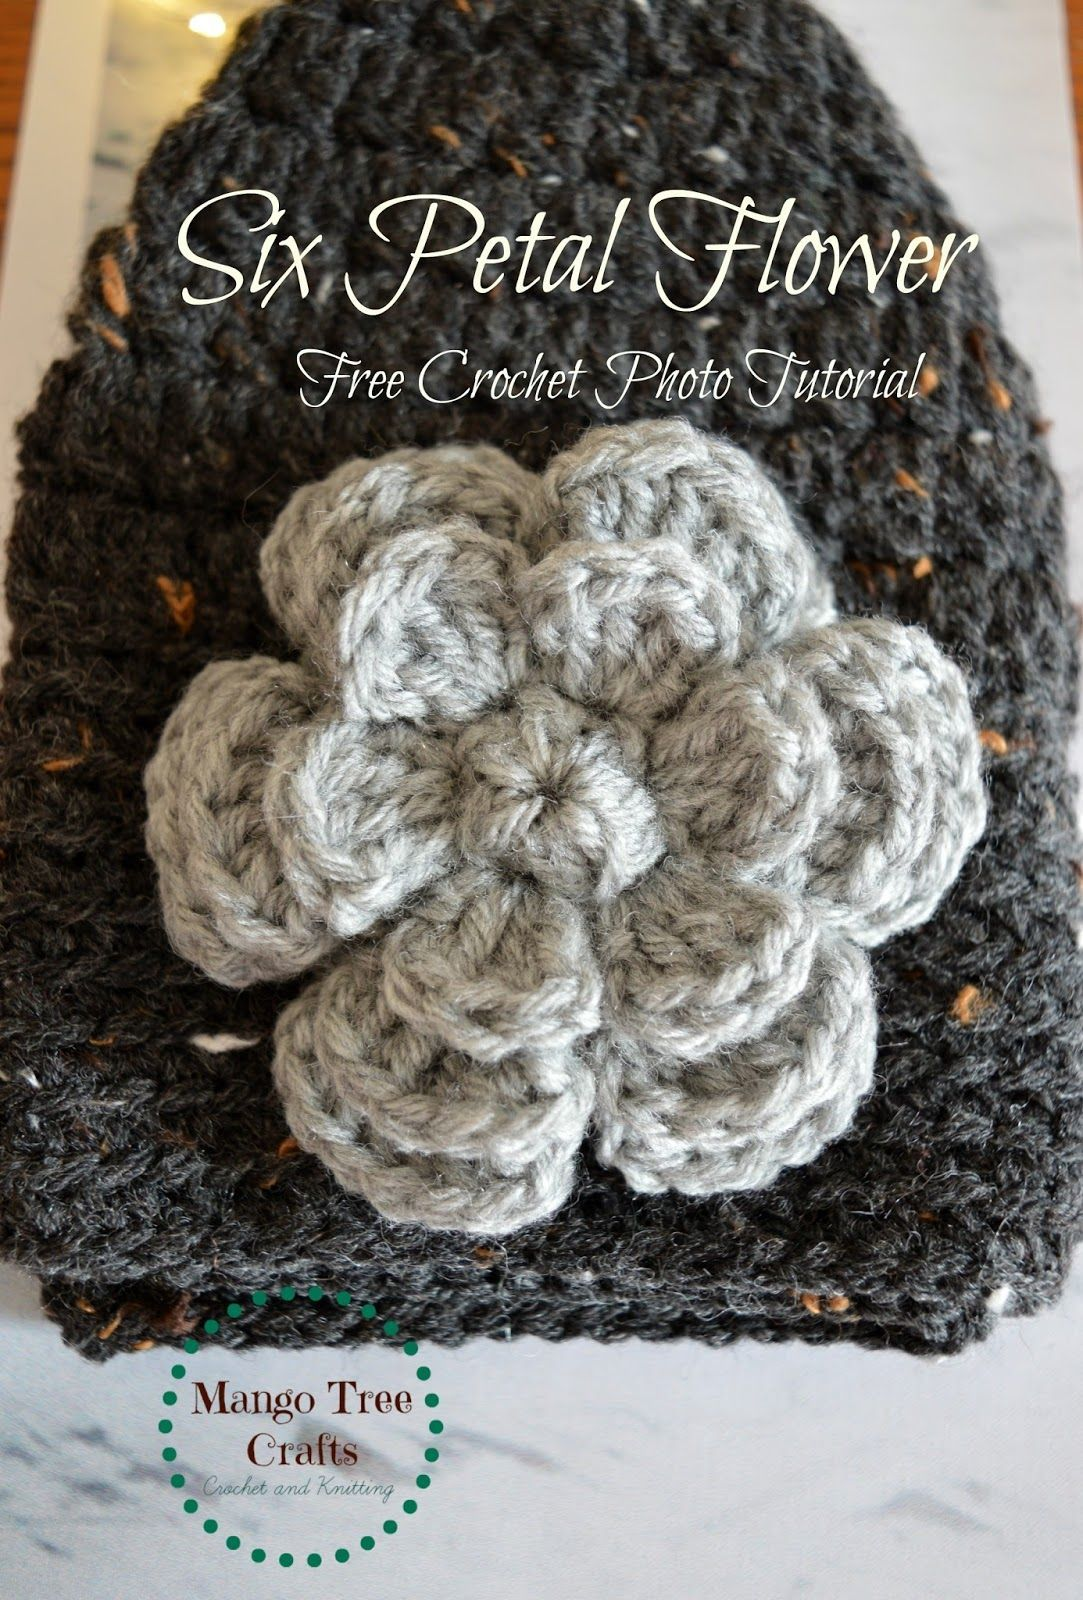 35+ Awesome Picture of Crochet Flower Free Pattern - vanessaharding.com #crochetedflowers